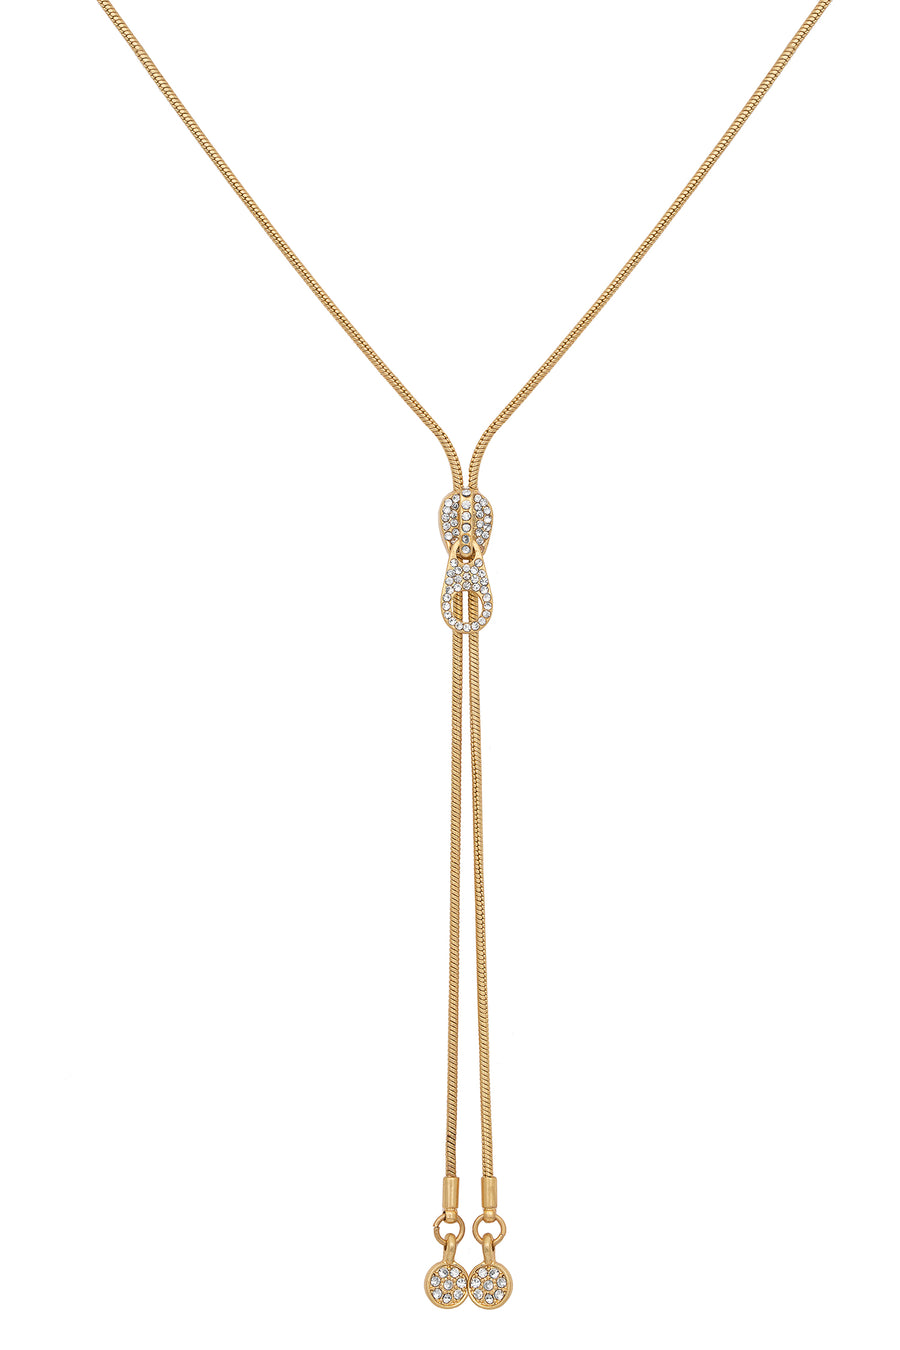 Kate Thornton Gold Zip Long Chain Necklace